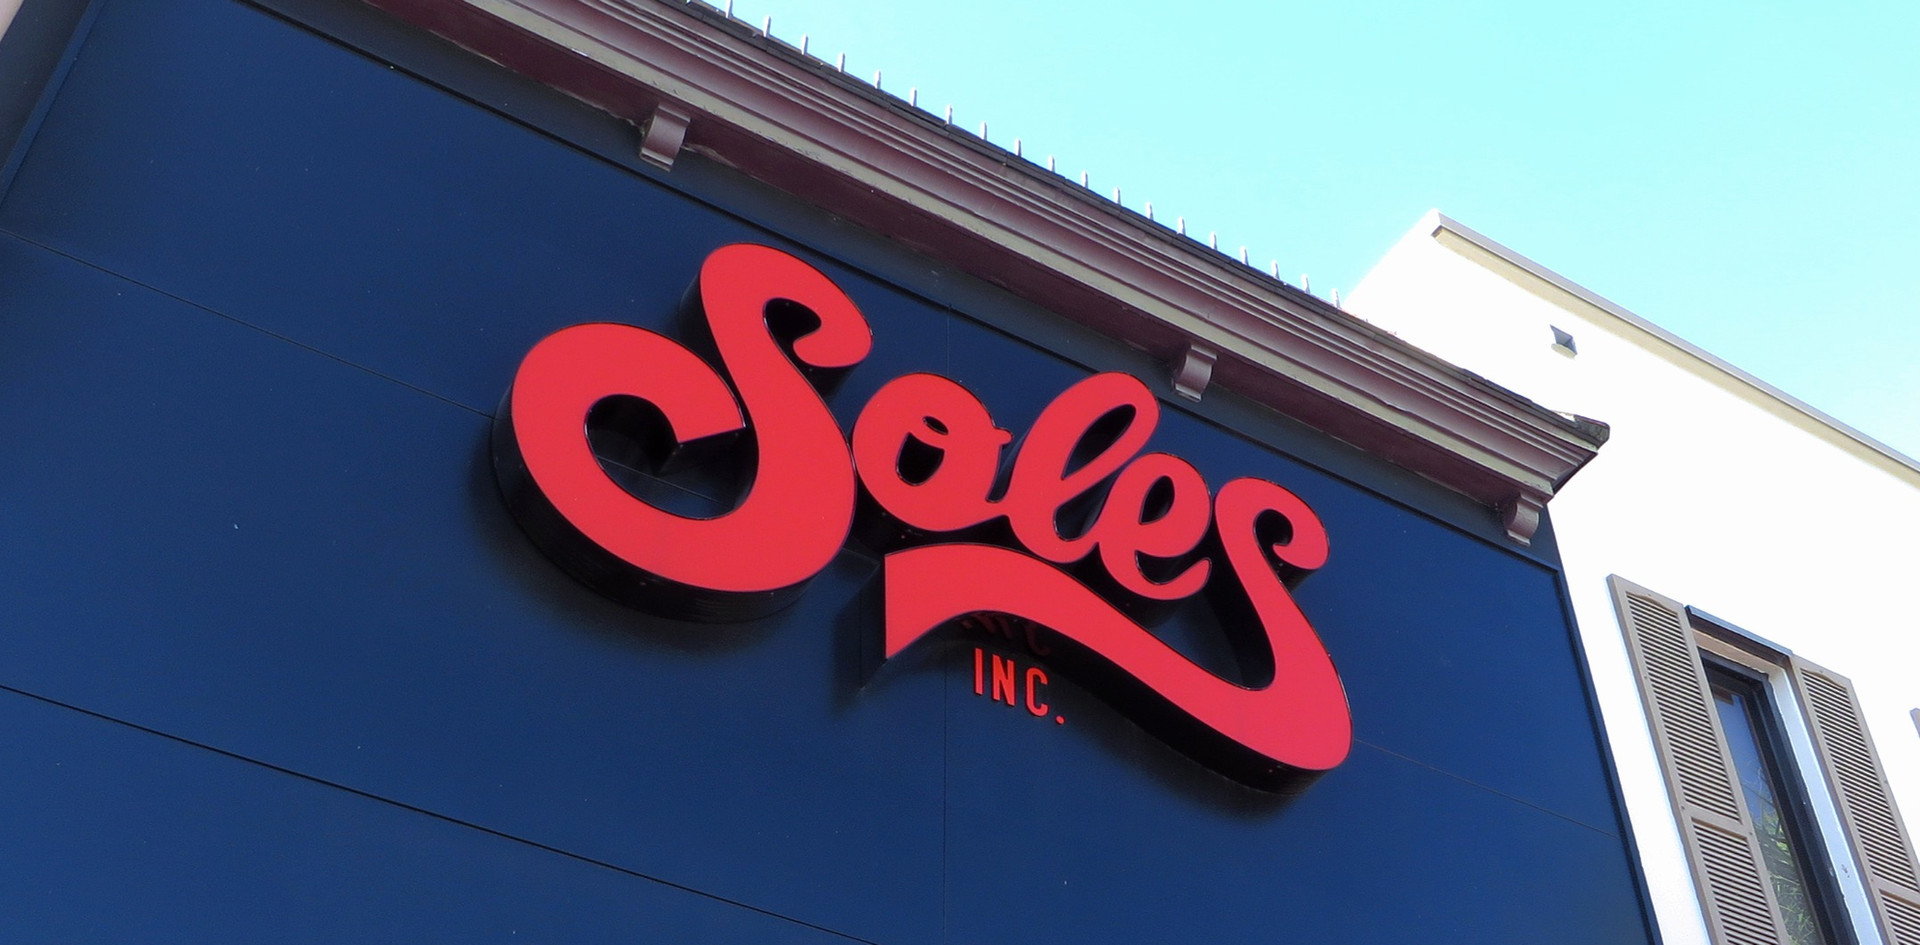 soles inc channel letters.jpg